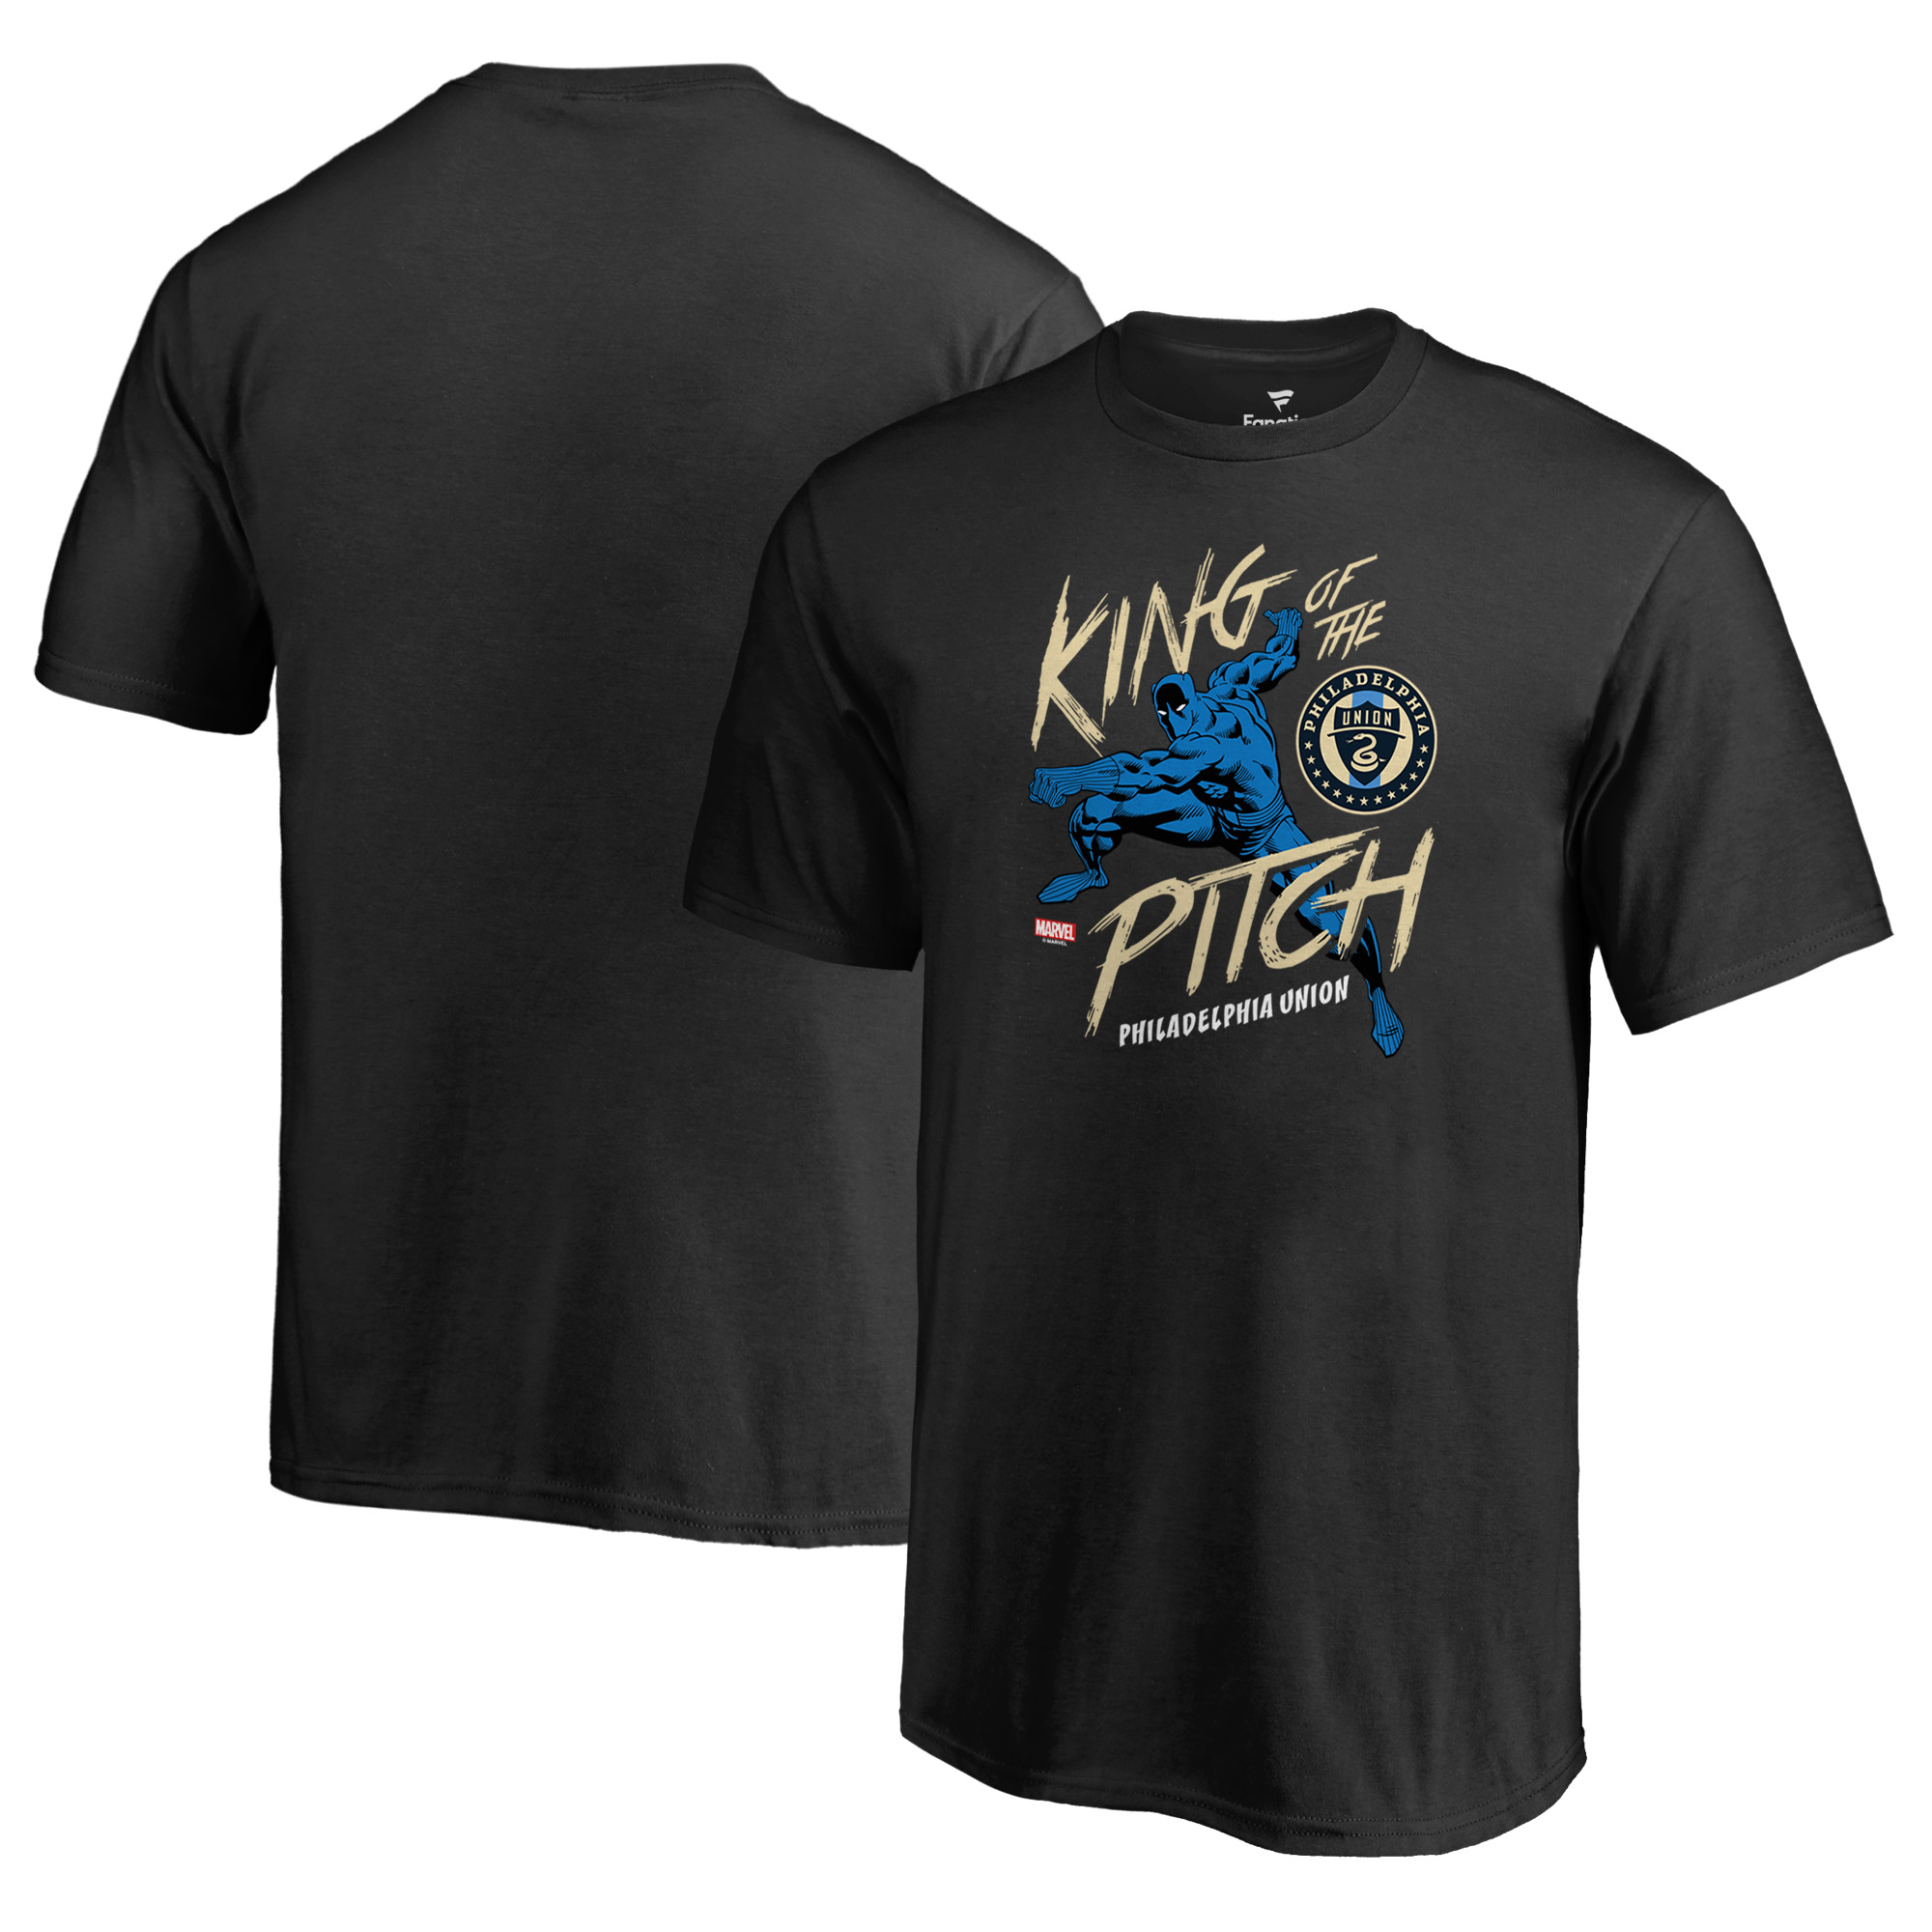 Philadelphia Union Fanatics Branded Youth MLS Marvel Black Panther King of the Pitch T-Shirt - Black